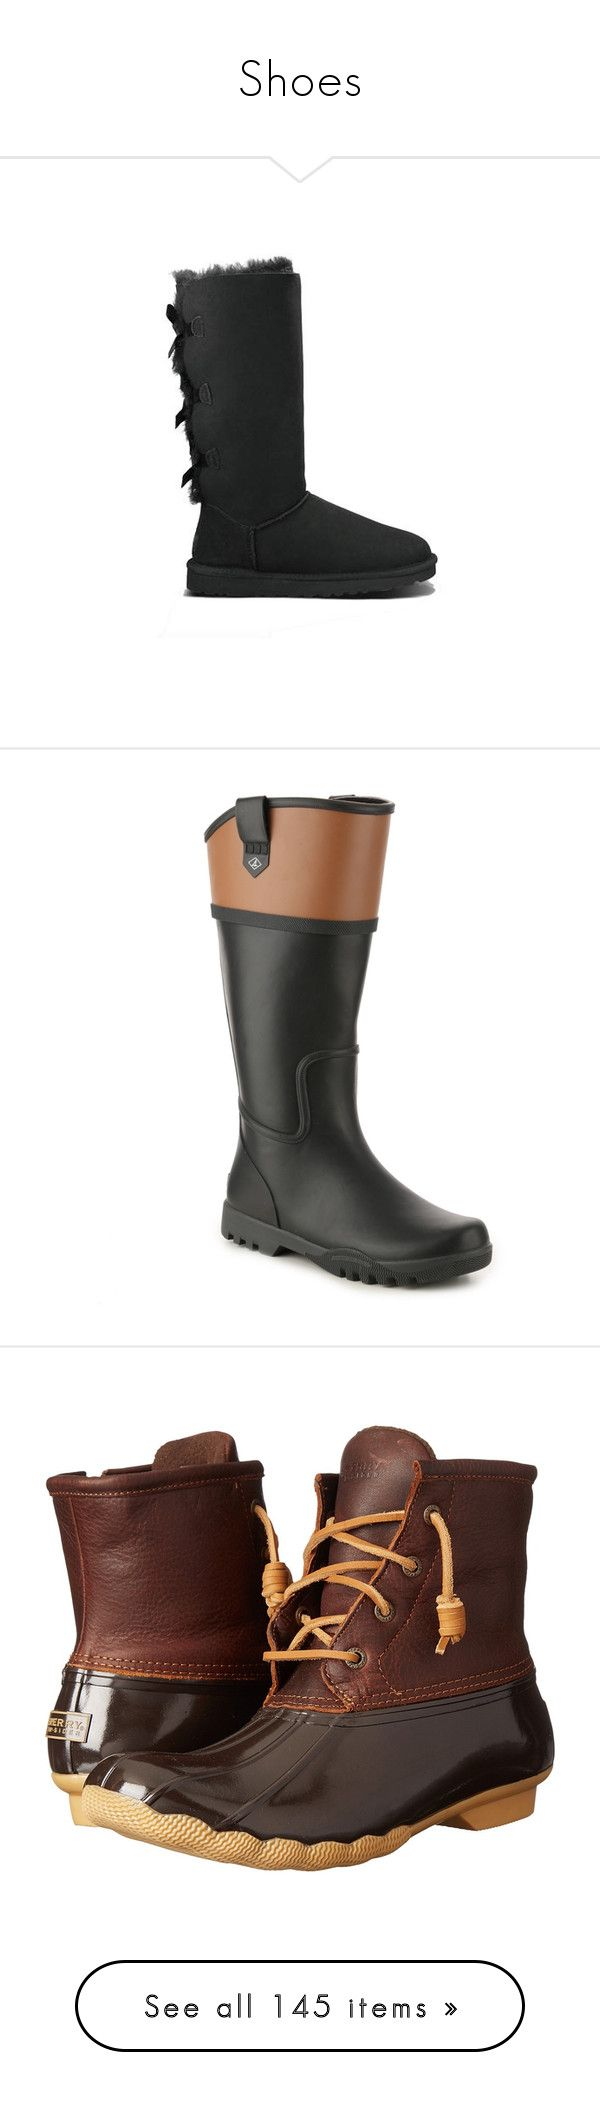 """""""Shoes"""" by thesabriner on Polyvore featuring shoes, boots, sperry shoes, rubber boots, sperry footwear, sperry, wellington boots, tan boots, dark brown leather boots and leather boots"""